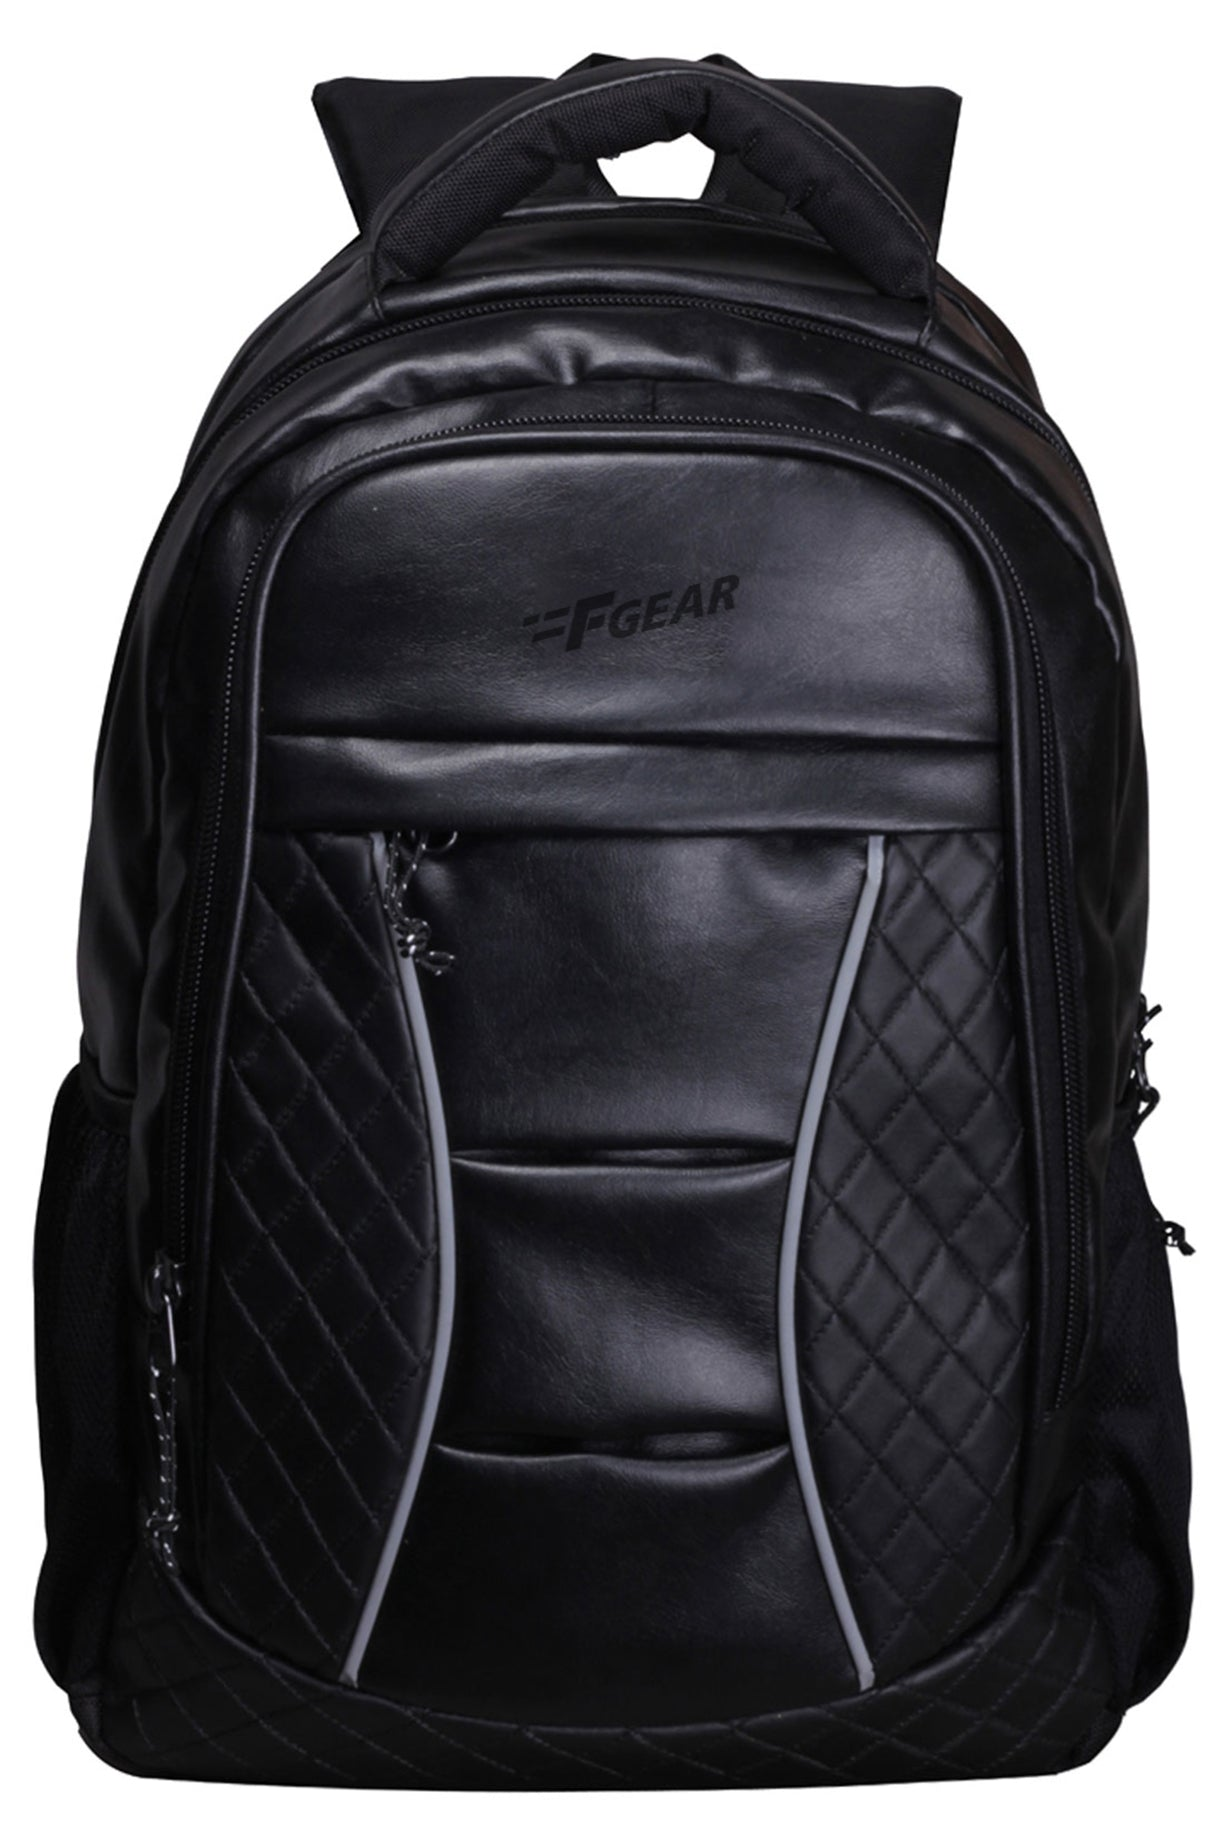 F Gear President 32 Ltrs Black Artificial Leather Laptop Backpack